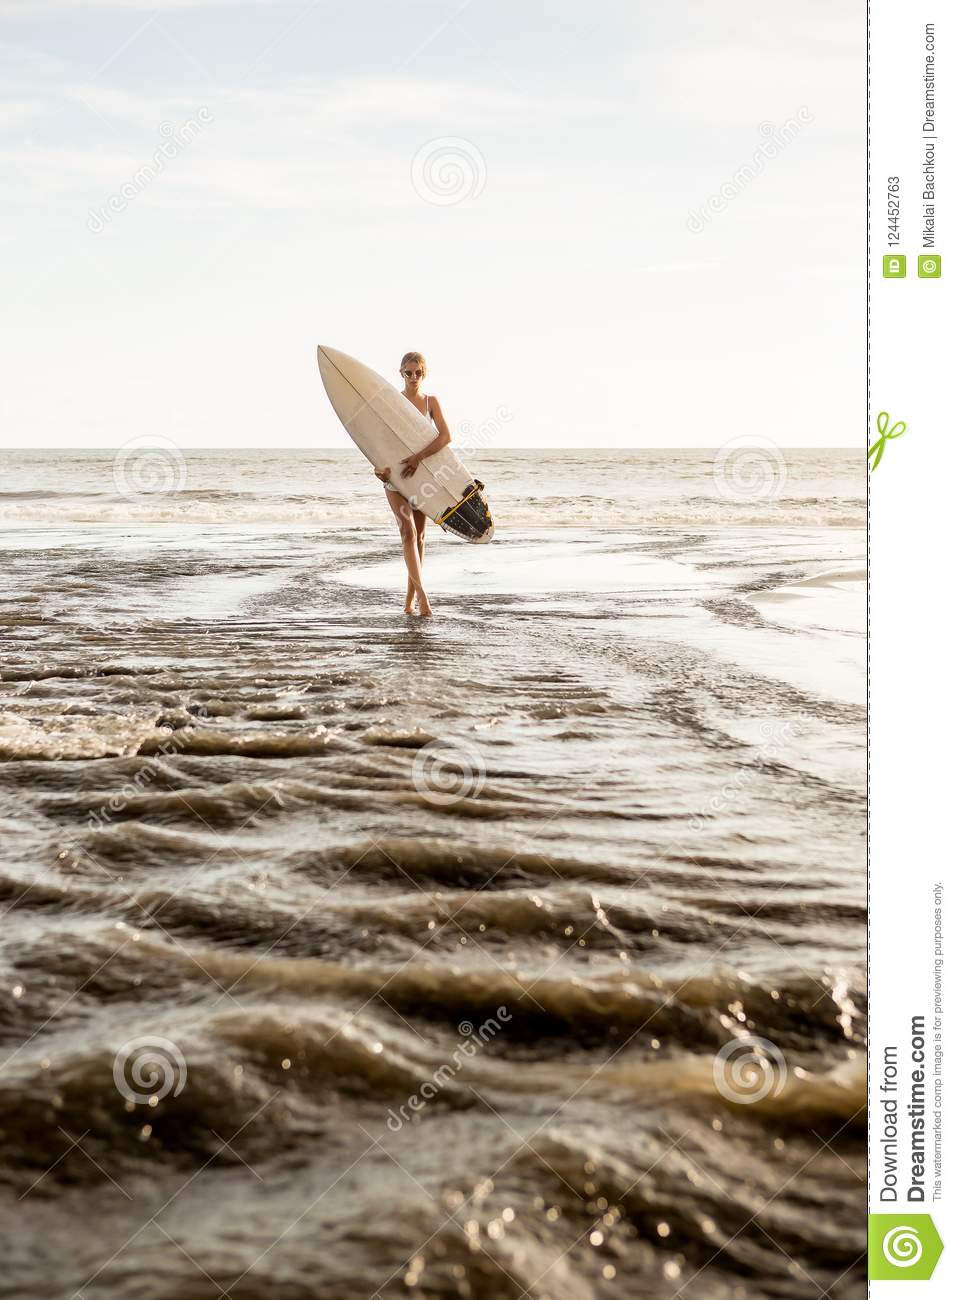 Surfing All Day Long Stock Image Image Of Holiday 124452763